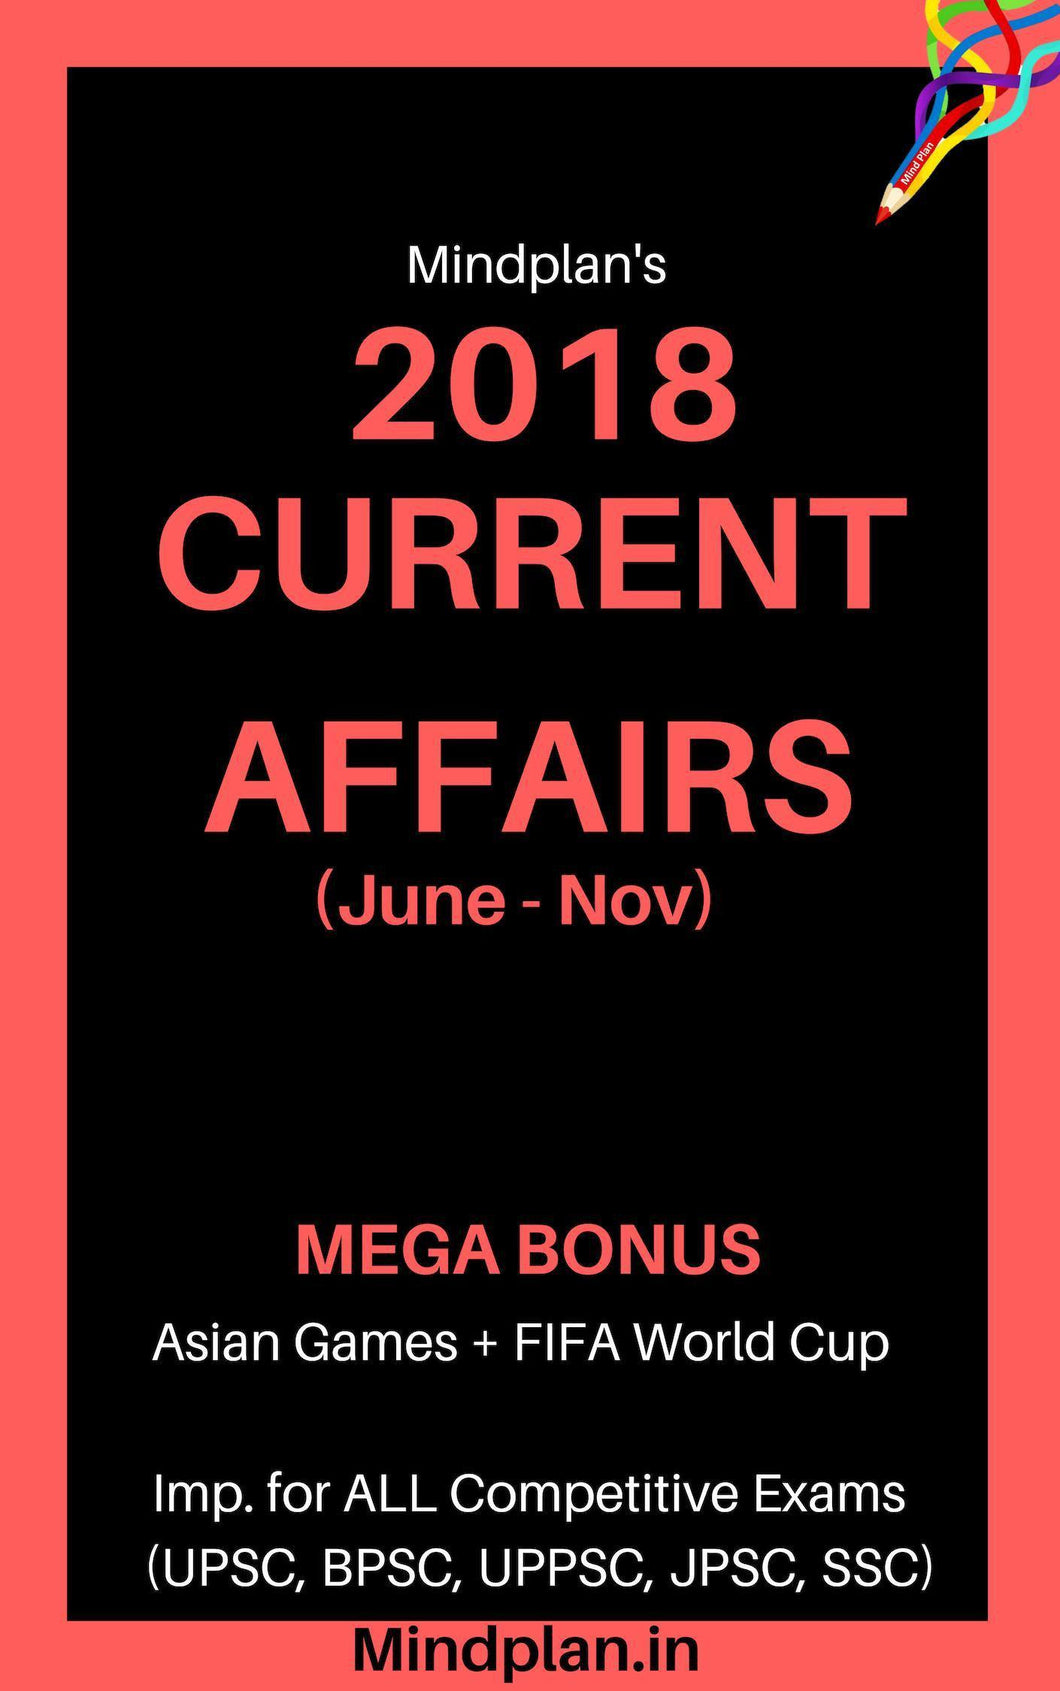 2018 Current Affairs (June - Nov) + MEGA BONUS - Asian Games + FIFA WORLD CUP [UPSC, BPSC, JPSC, UPPSC etc] - Mindplan